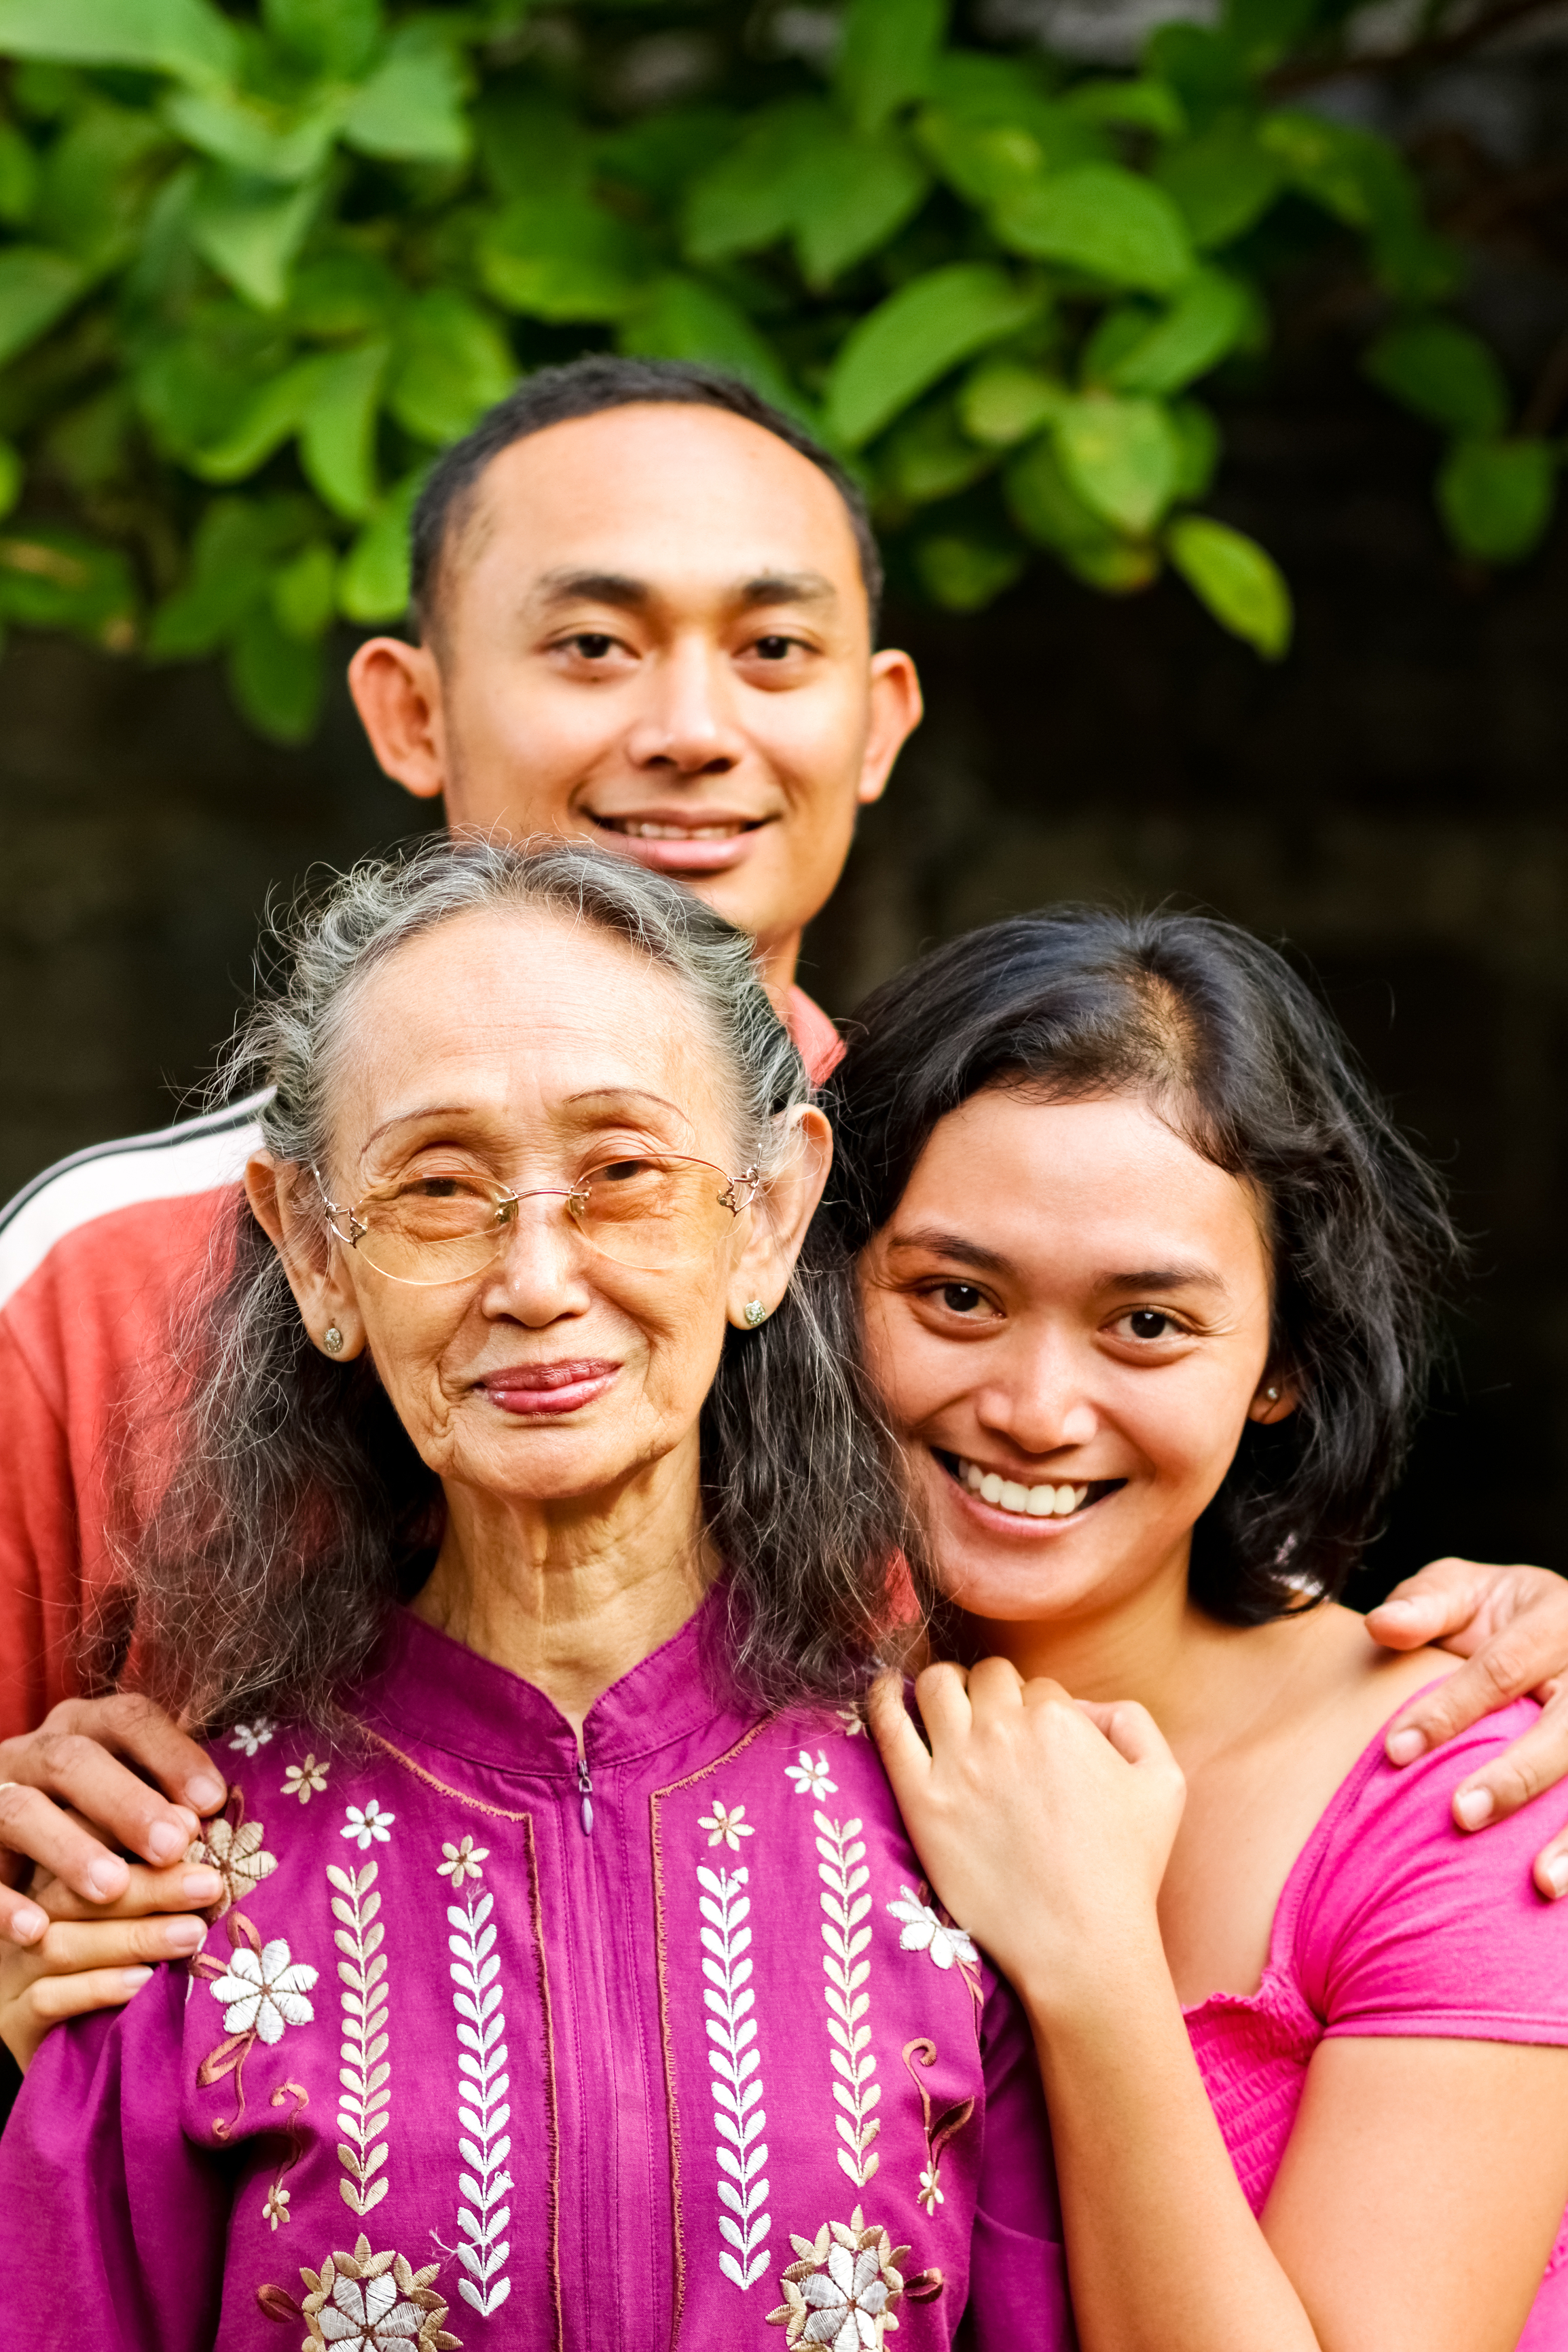 Elders, safely learn English in a way that benefits you and your family.